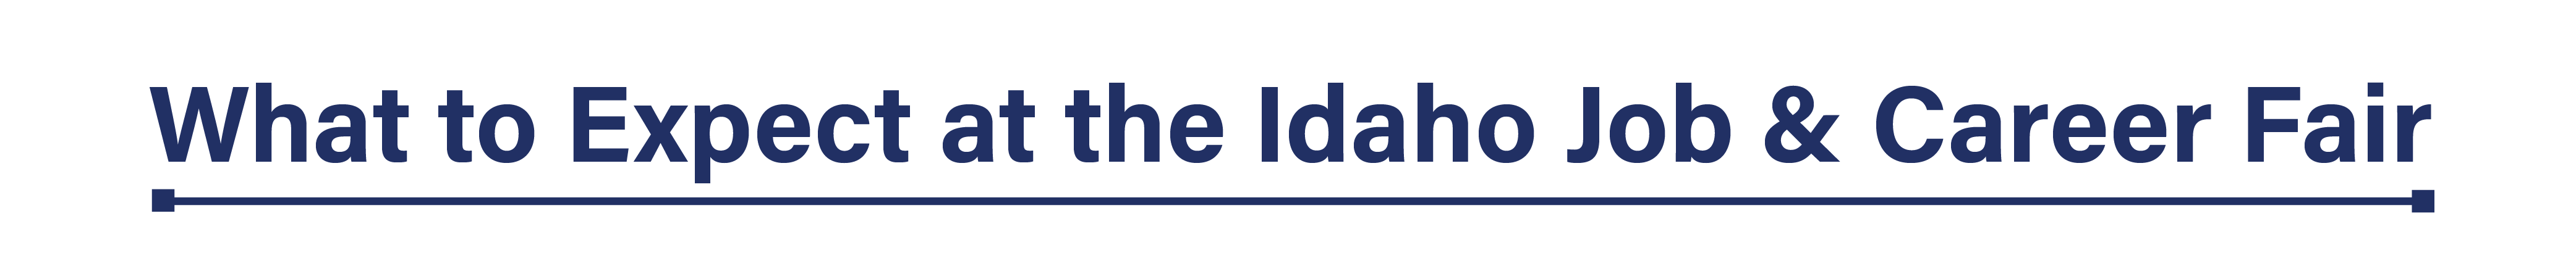 What is the Idaho Job & Career Fair header